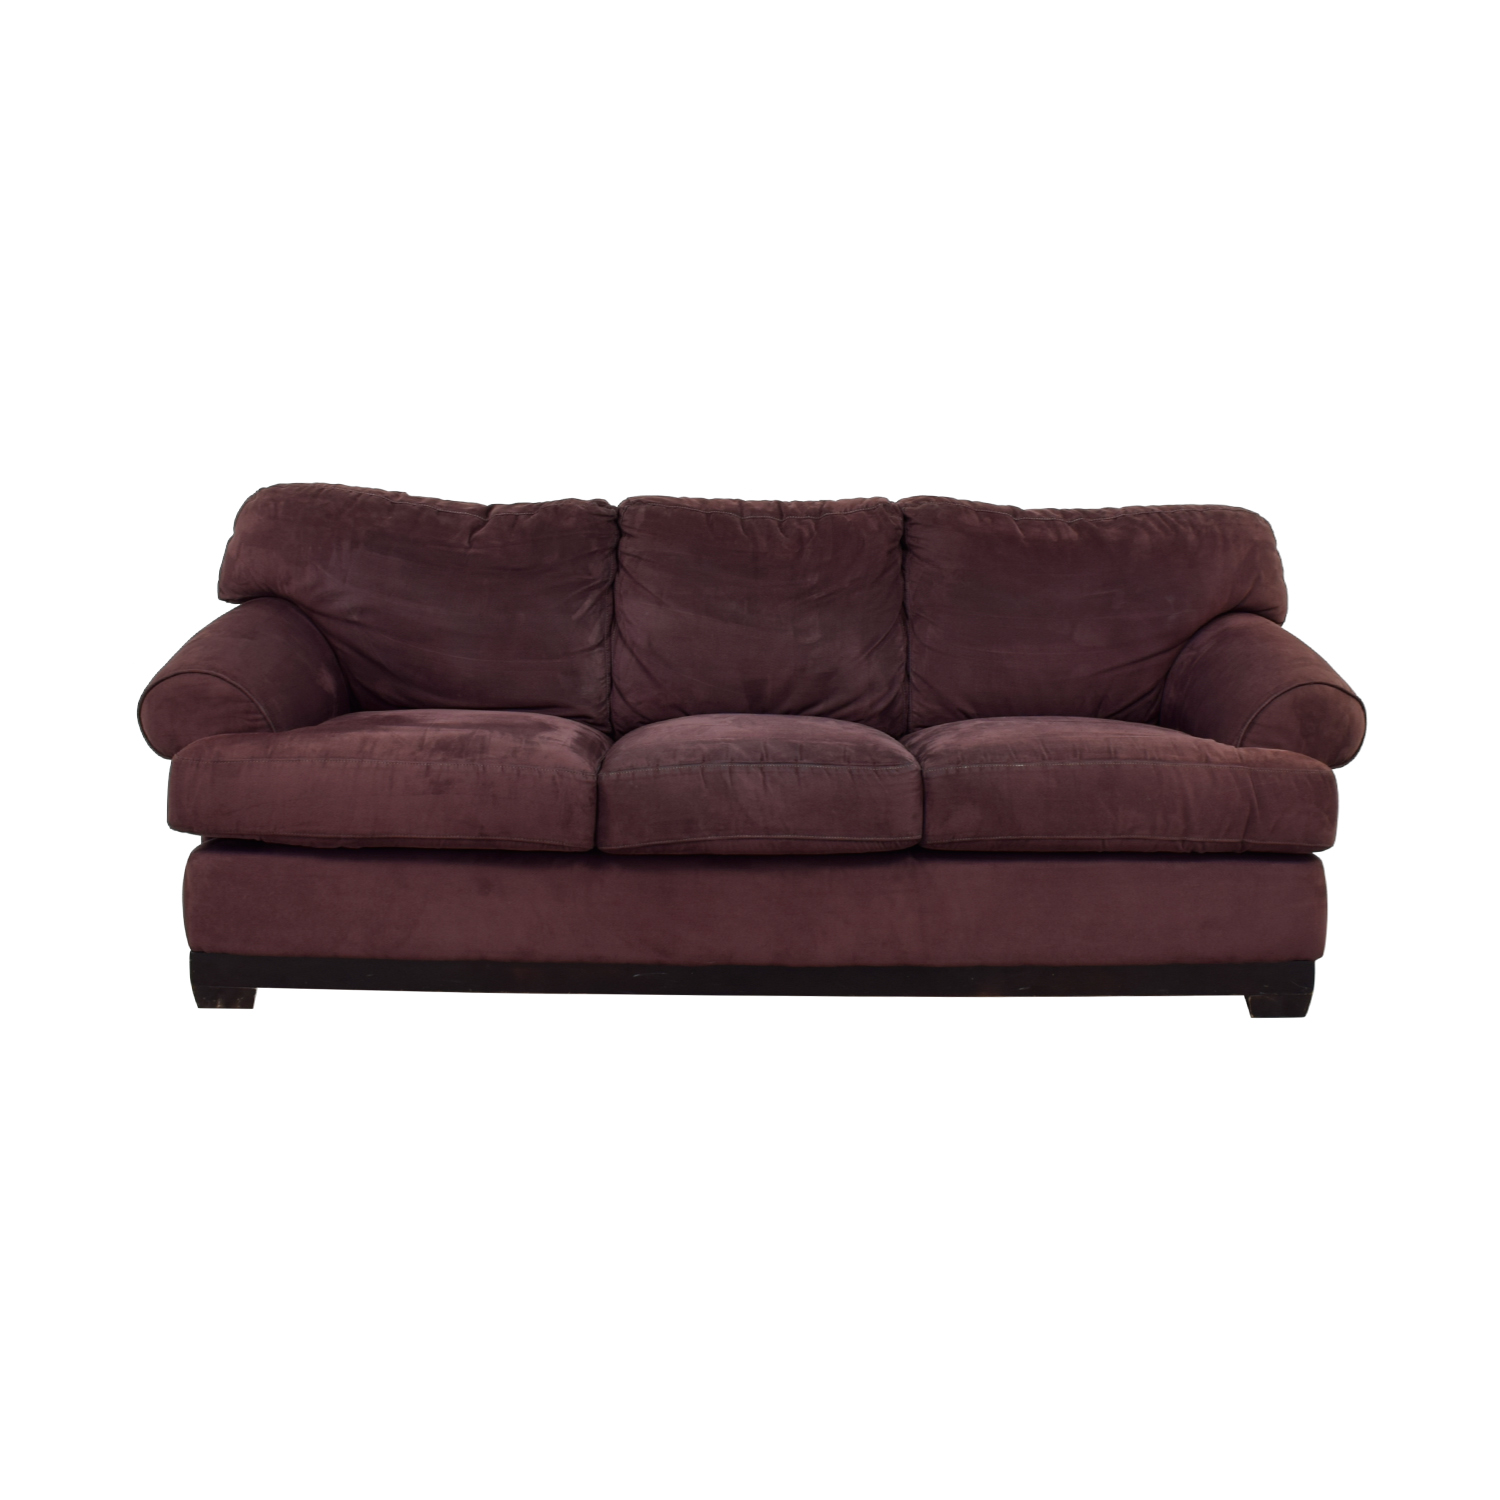 Macy's Macy's Plum Three-Cushion Sofa